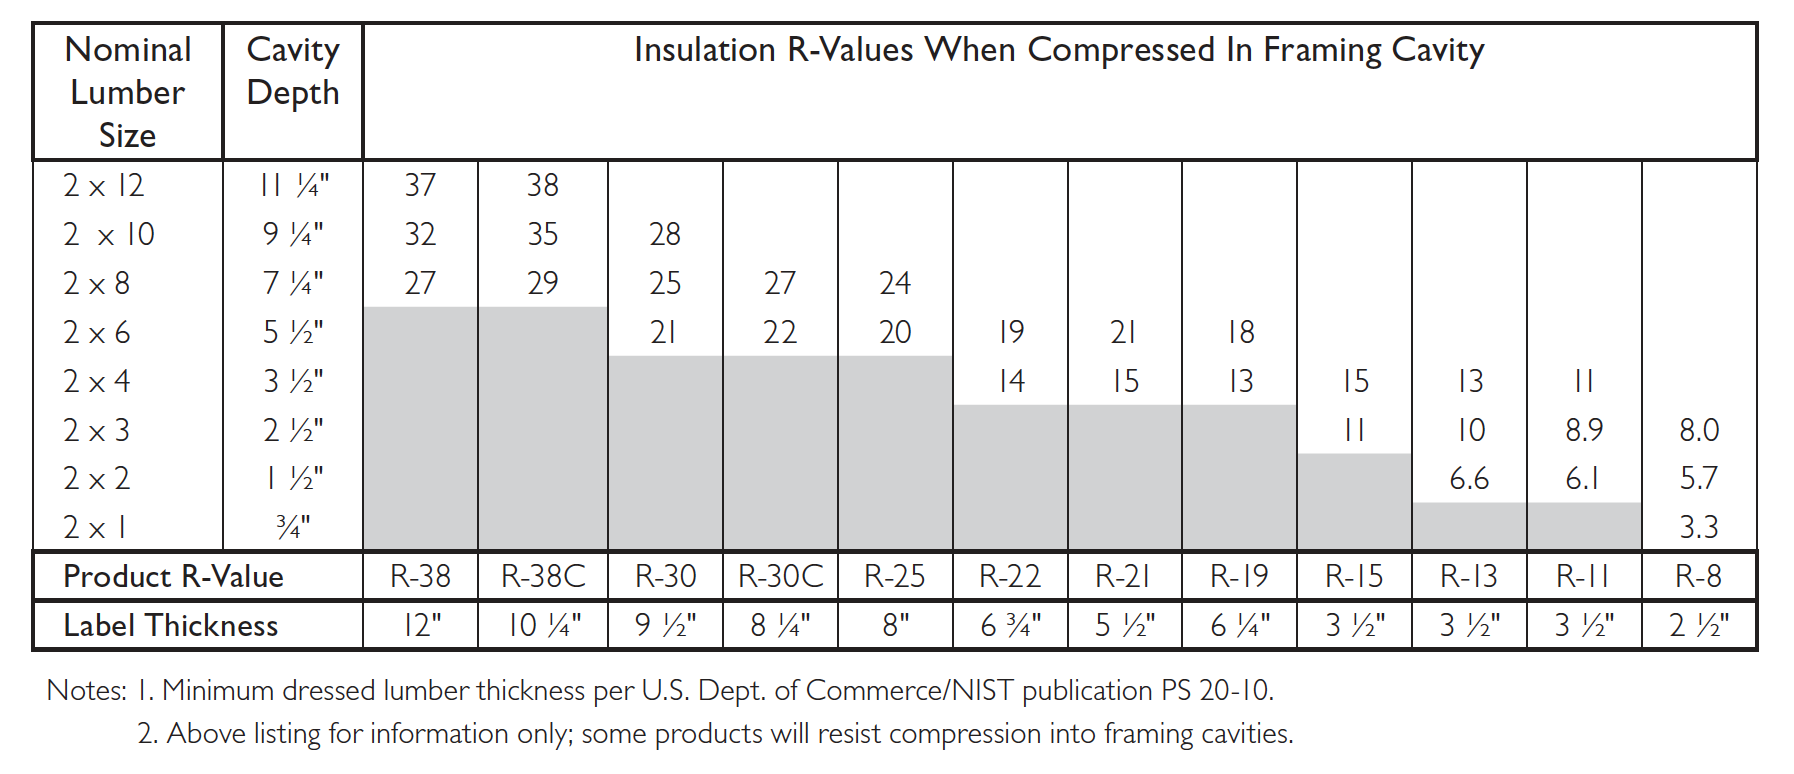 Owens Corning compressed fiberglass insulation R-value chart  sc 1 st  Energy Vanguard & Is Compressed Fiberglass Insulation Really So Bad? | Energy Vanguard